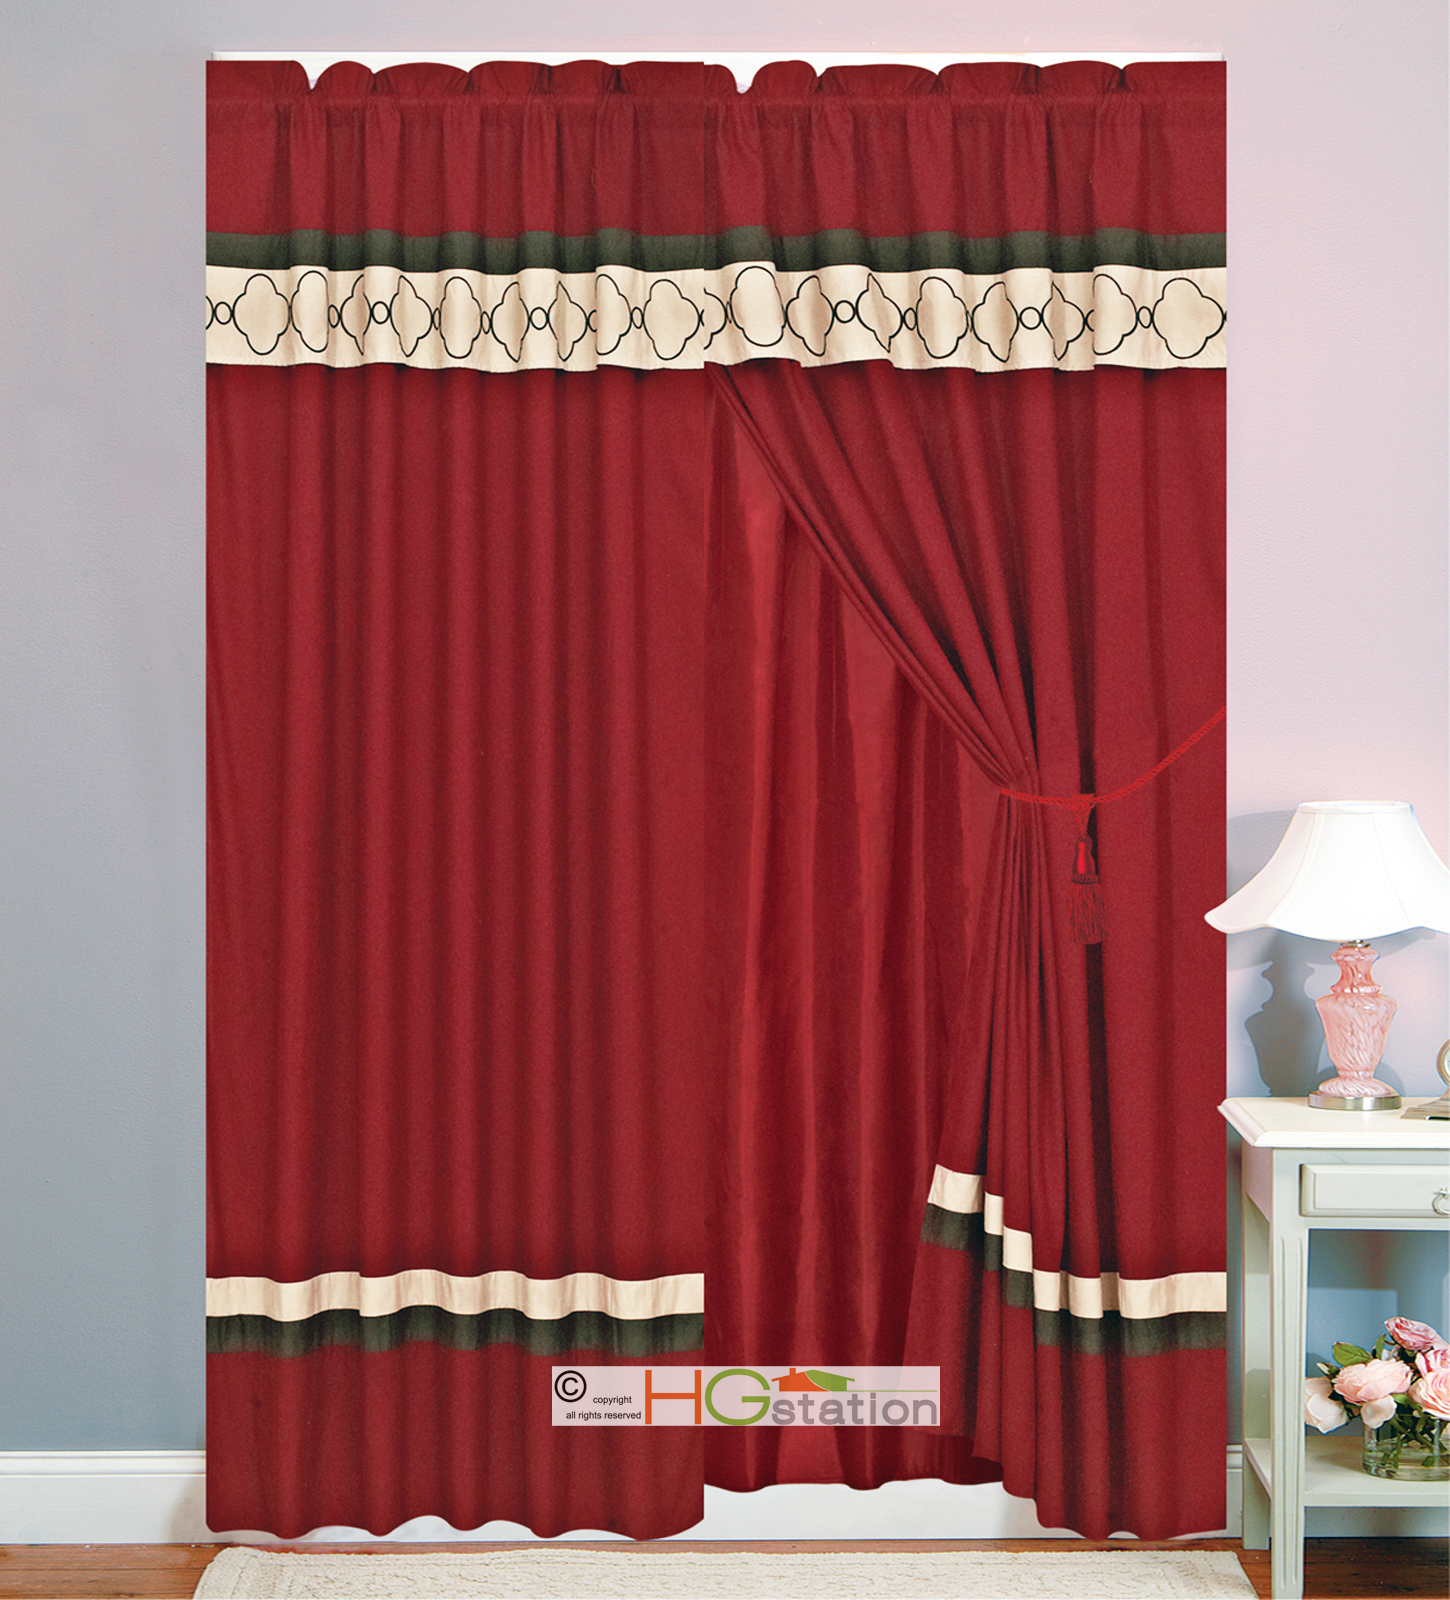 Hg Station 4 Pc Embroidered Casablanca Trellis Moroccan Striped Curtain Set Burgundy Red Brown Tan